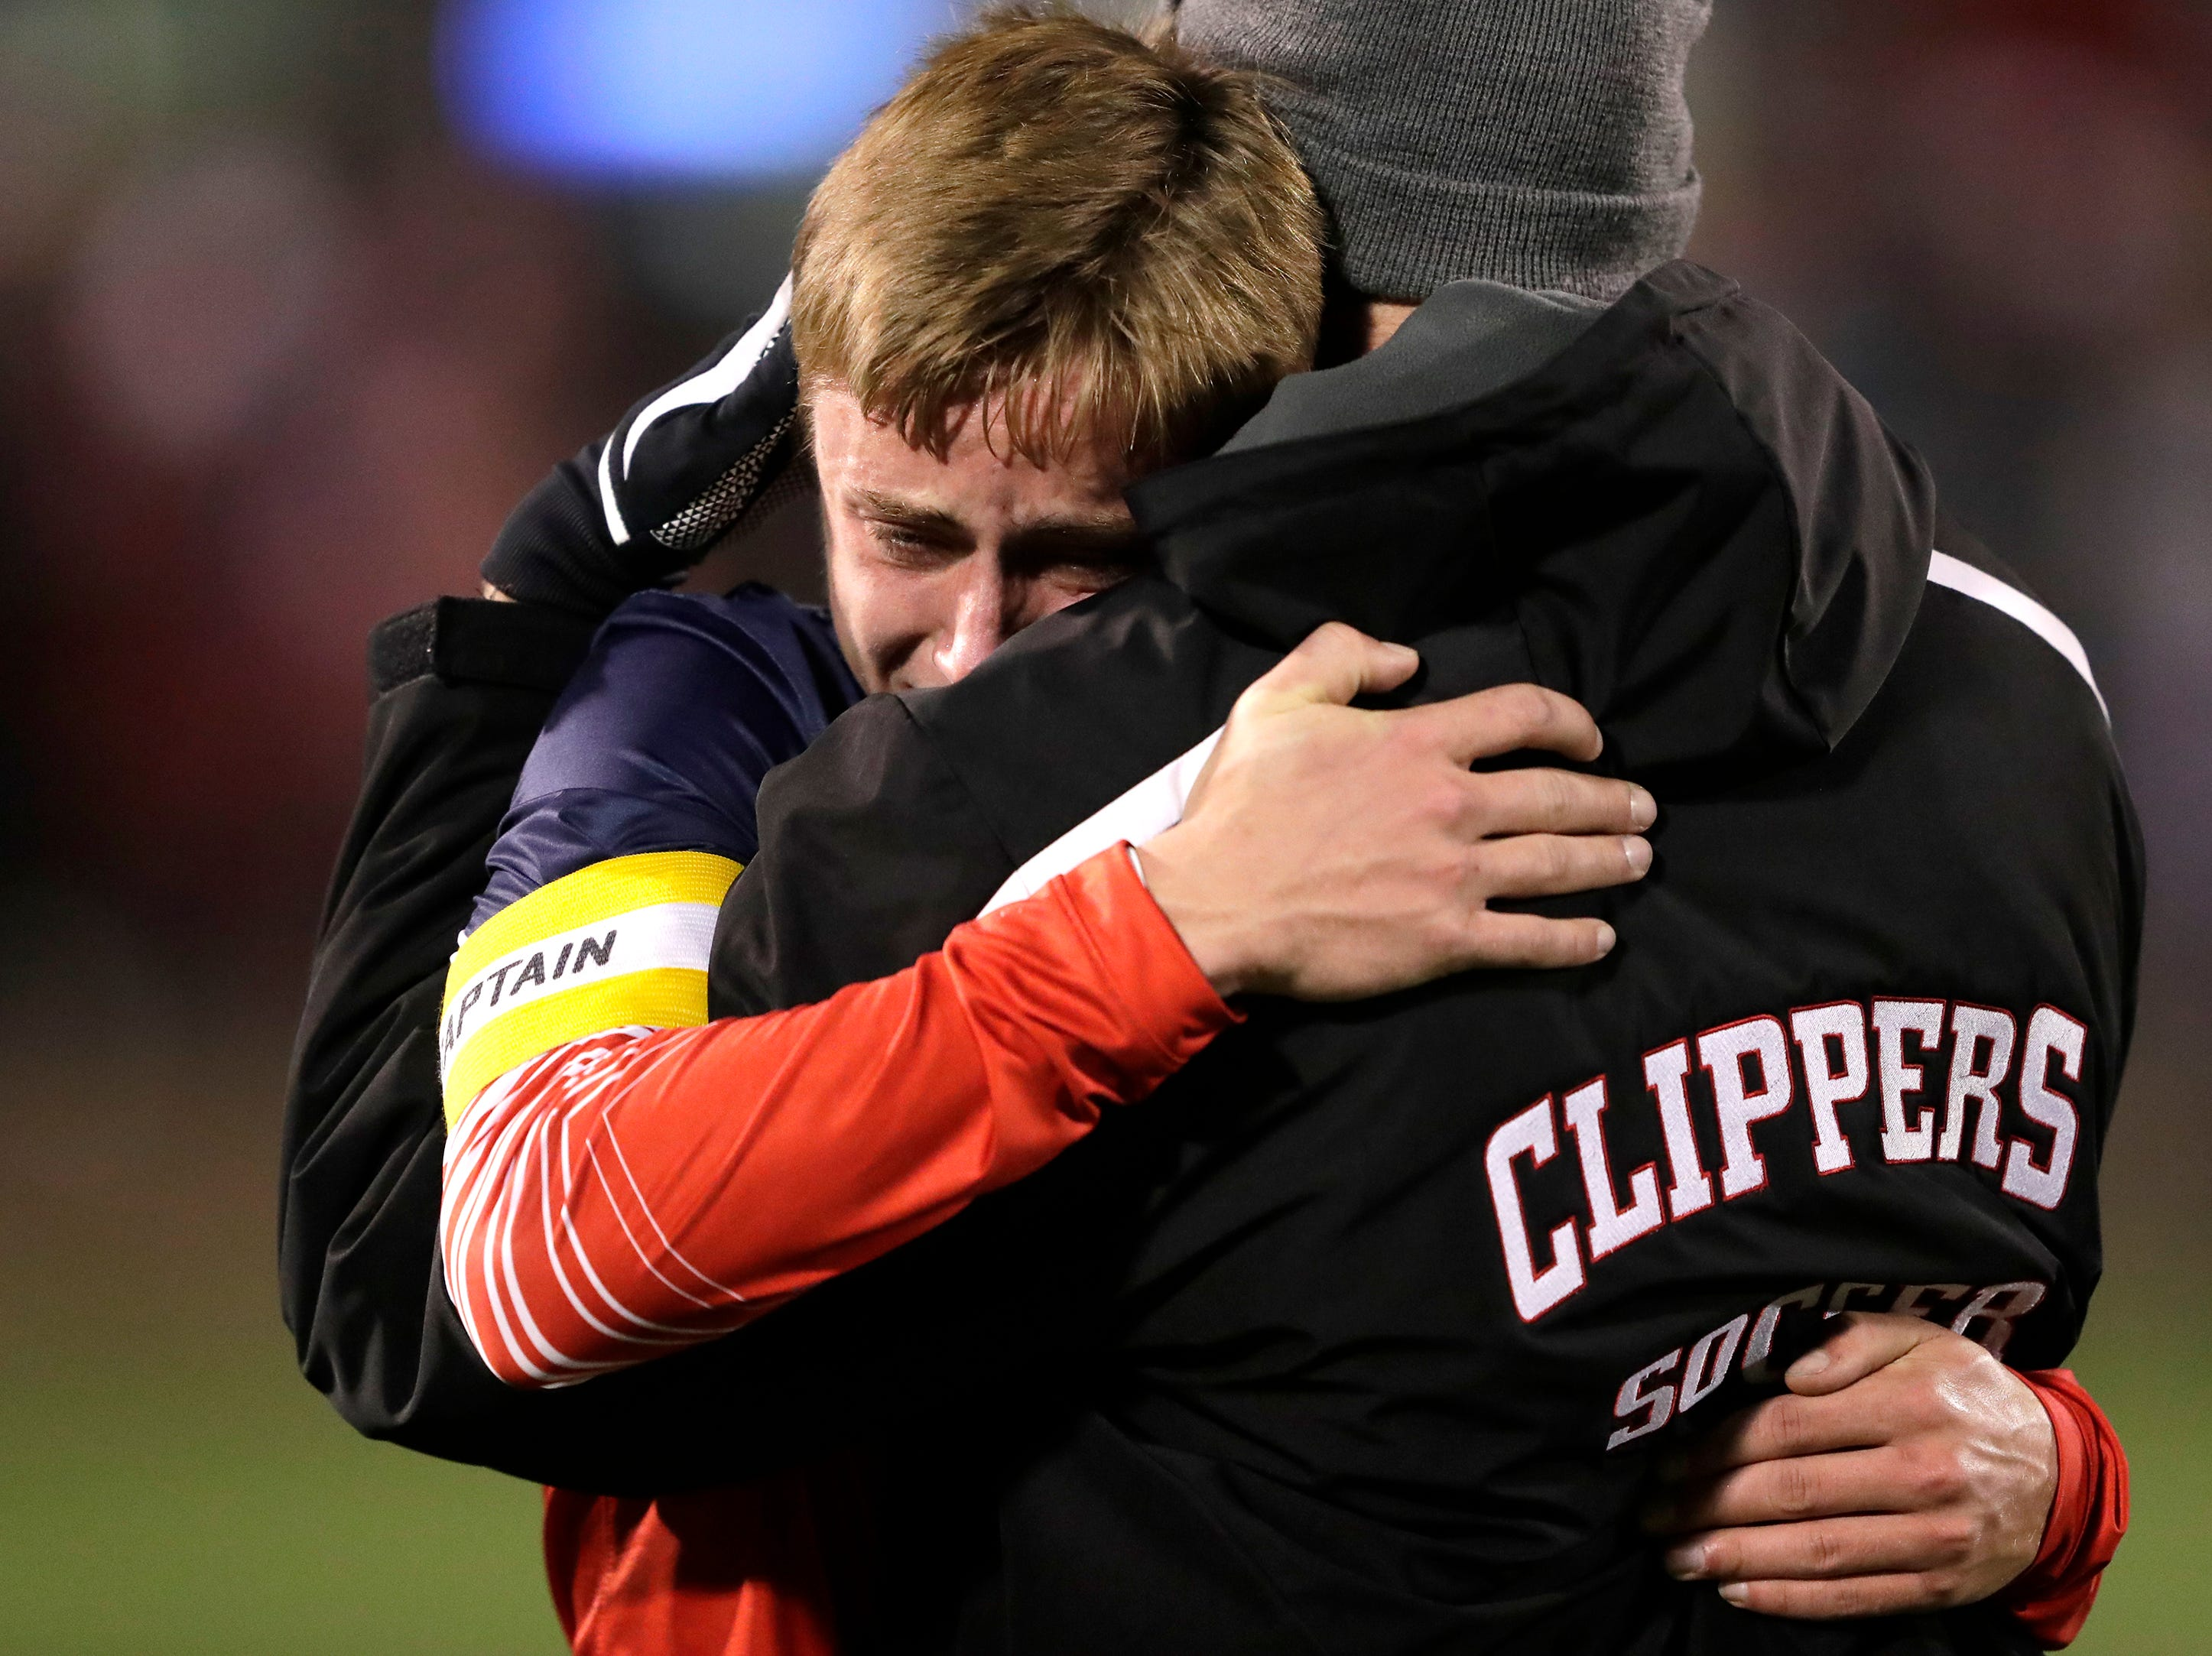 Sturgeon Bay High School's DJ Reichel gets a hug from assistant coach Matt  Broomhall after a 4-1 loss against University School of Milwaukee during their WIAA Division 4 state semifinal boys soccer game Friday, November 2, 2018, at Uihlein Soccer Park in Milwaukee, Wis. 